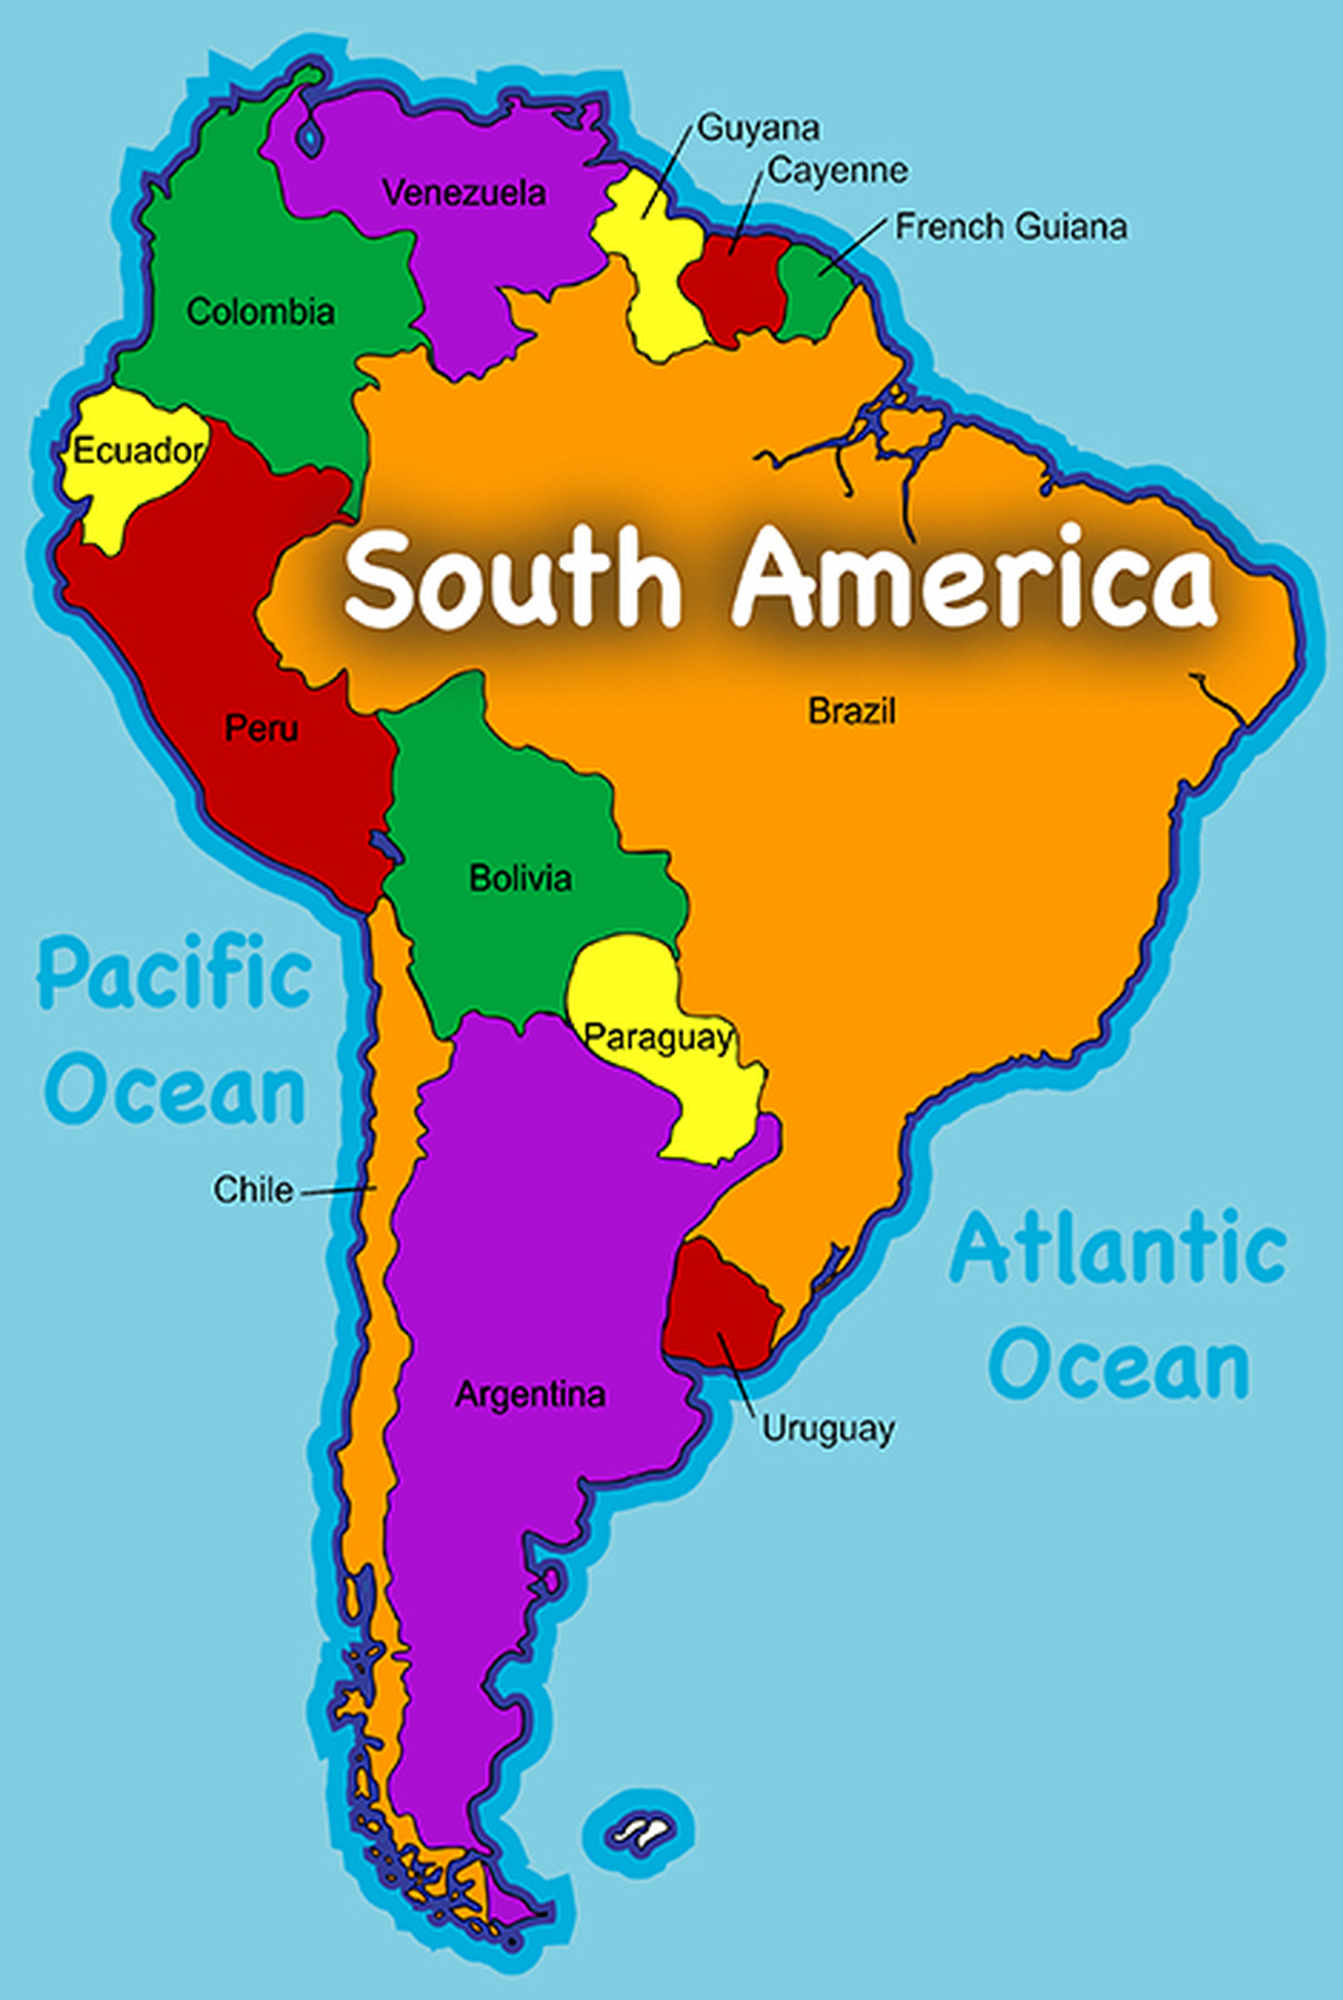 Map of South America, The Americas Map Americas on america globe, america google earth, america activities, america text, incorporated territory, america hemisphere, america weather, america national anthem, u.s. county, america logo, america atlas, indian reservation, america acronym, america area, america vector, america city, america continent, america shopping, america attractions, america people, america art, america outline, united states territory, contiguous united states, america water bottle,